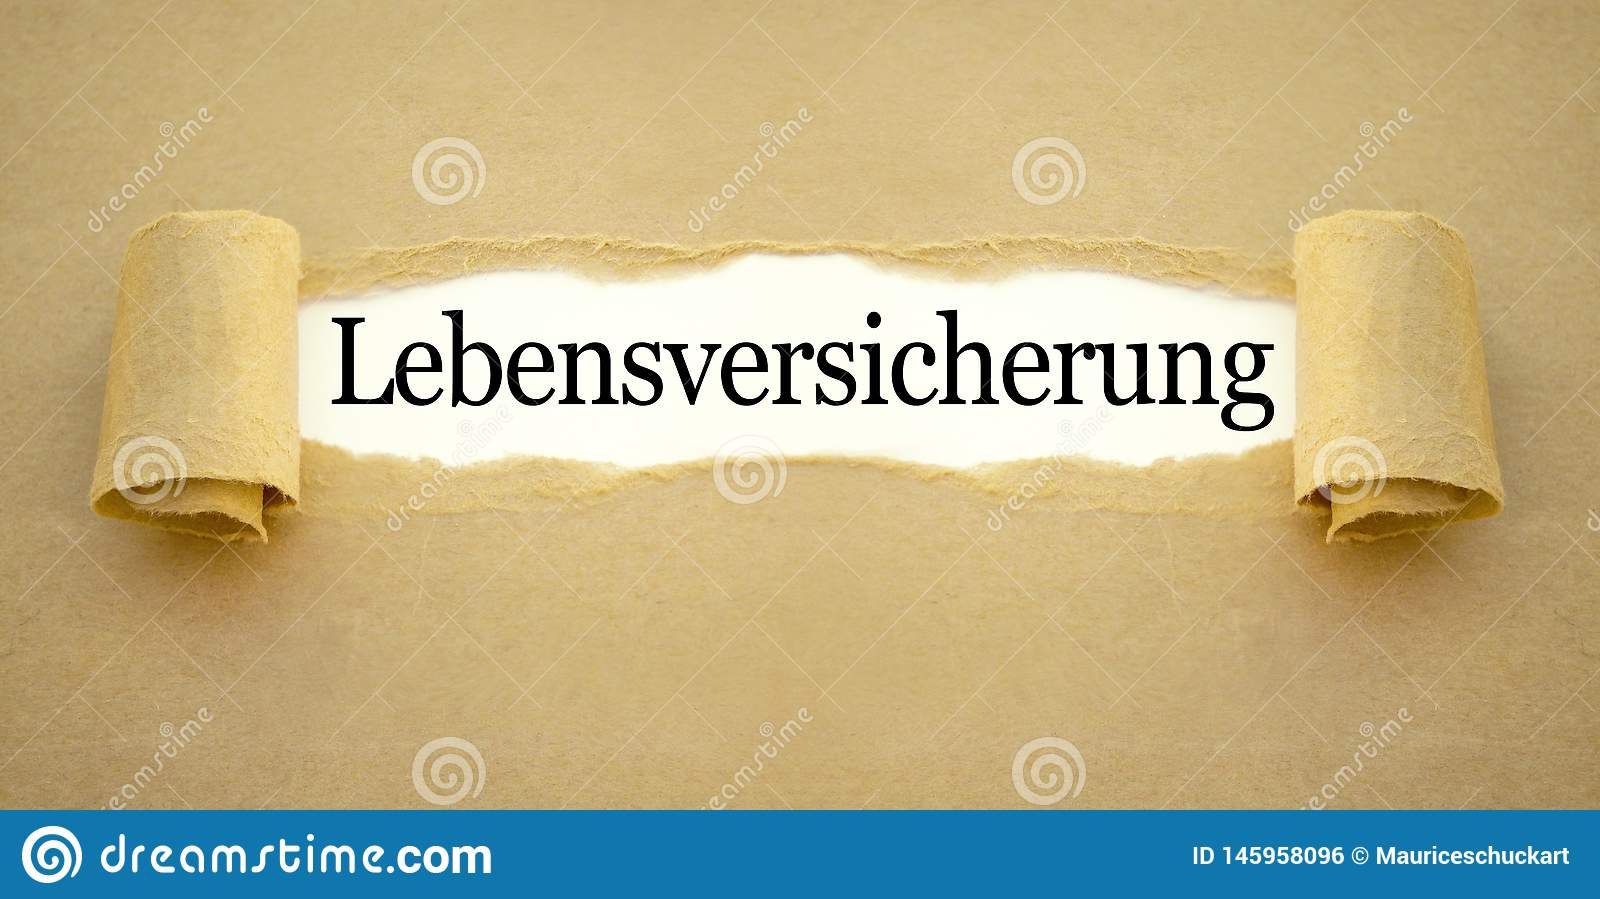 Paper work with the german word for life insurance policy - Lebensversicherung